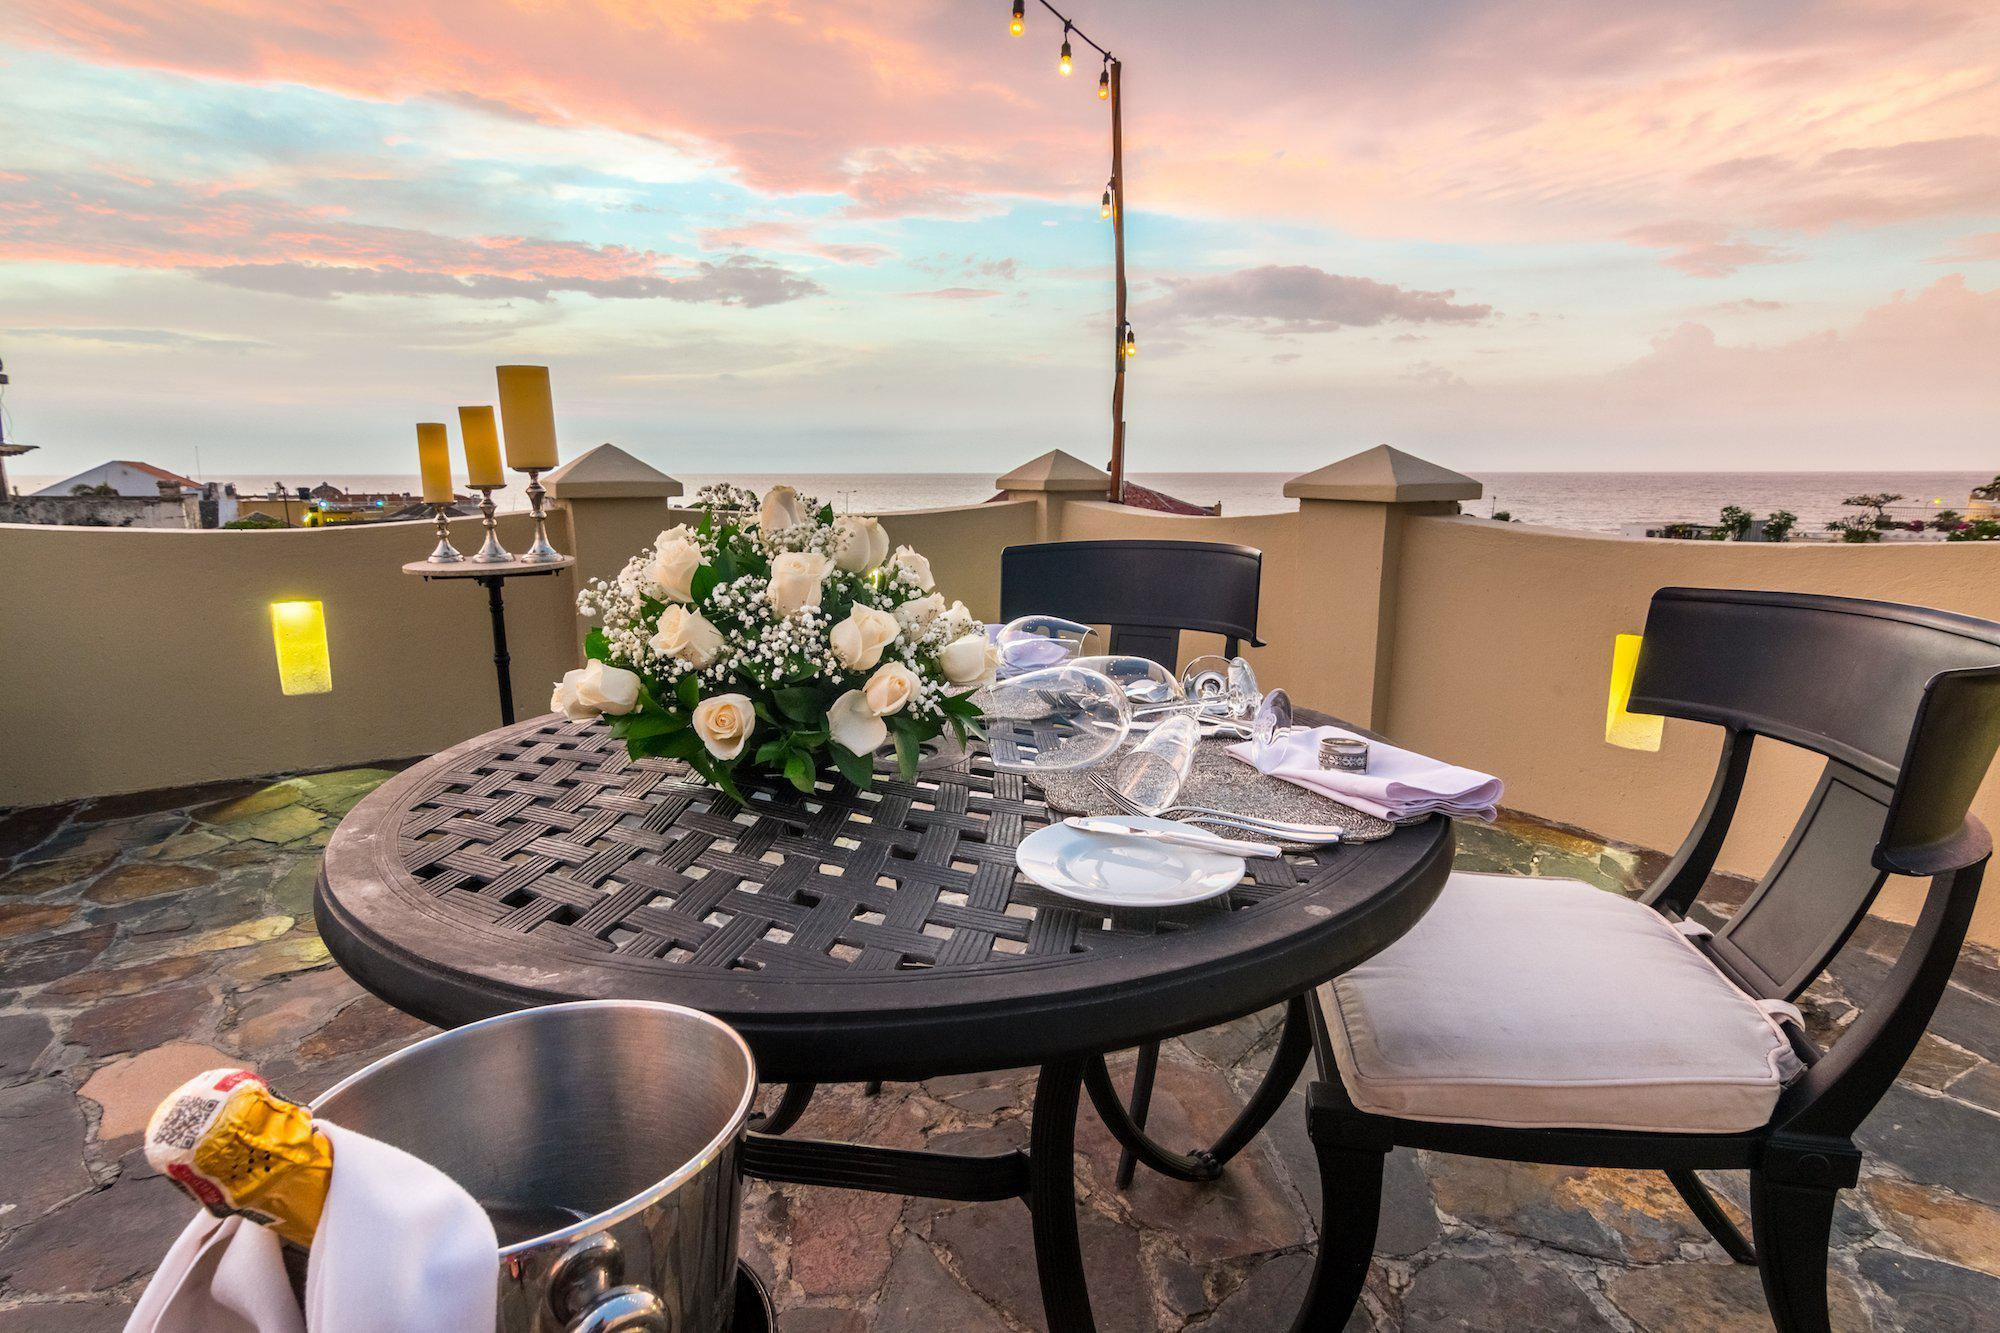 Our 4 favorite hotels in Cartagena